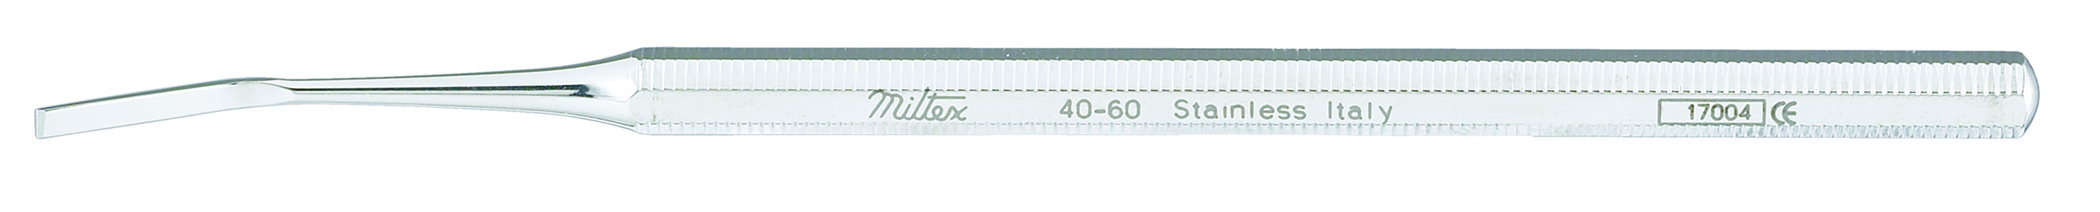 nail-splitter-angled-2-mm-wide-40-60-miltex.jpg